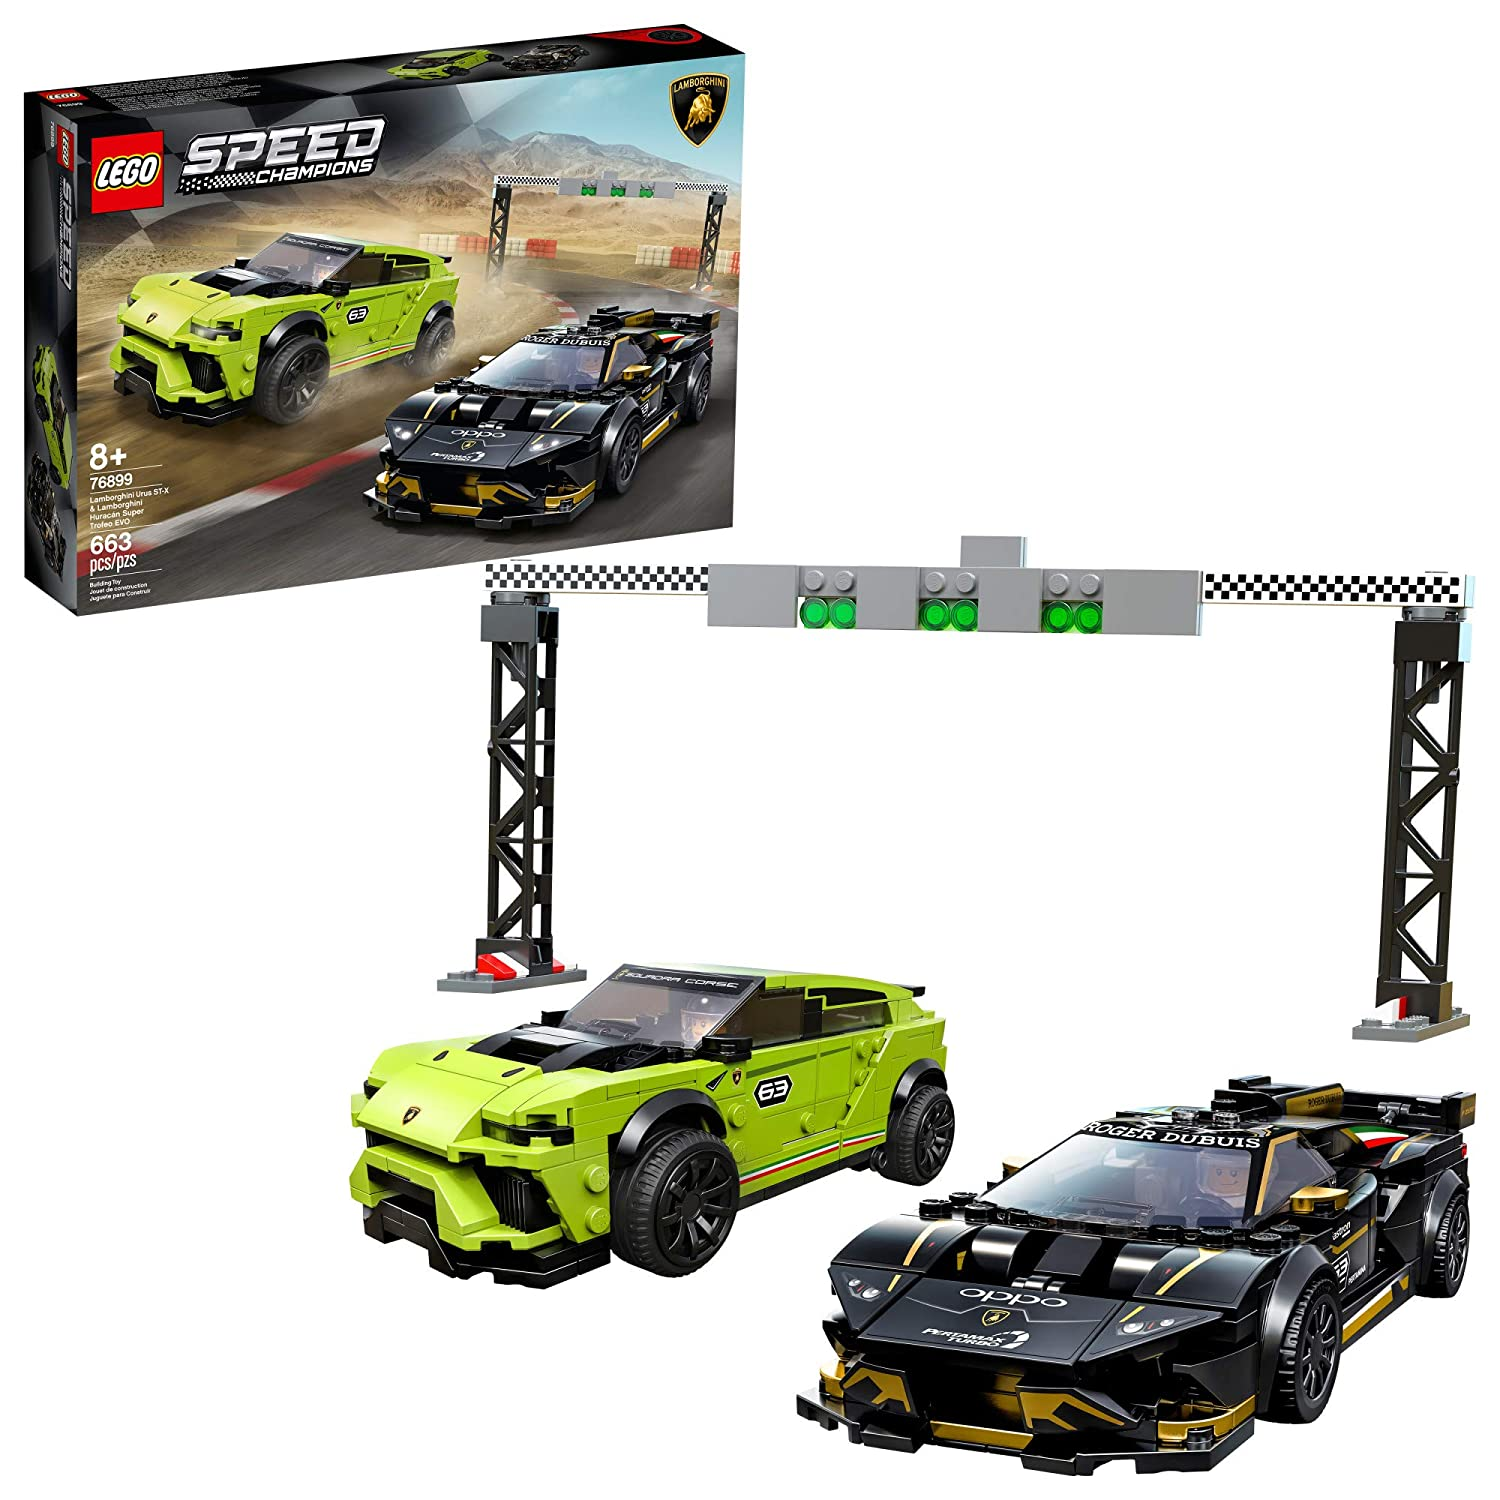 LEGO Speed Champions Lamborghini Urus ST-X and Lamborghini Huracán Super Trofeo EVO 76899 Building Kit, New 2020 (663 Pieces)